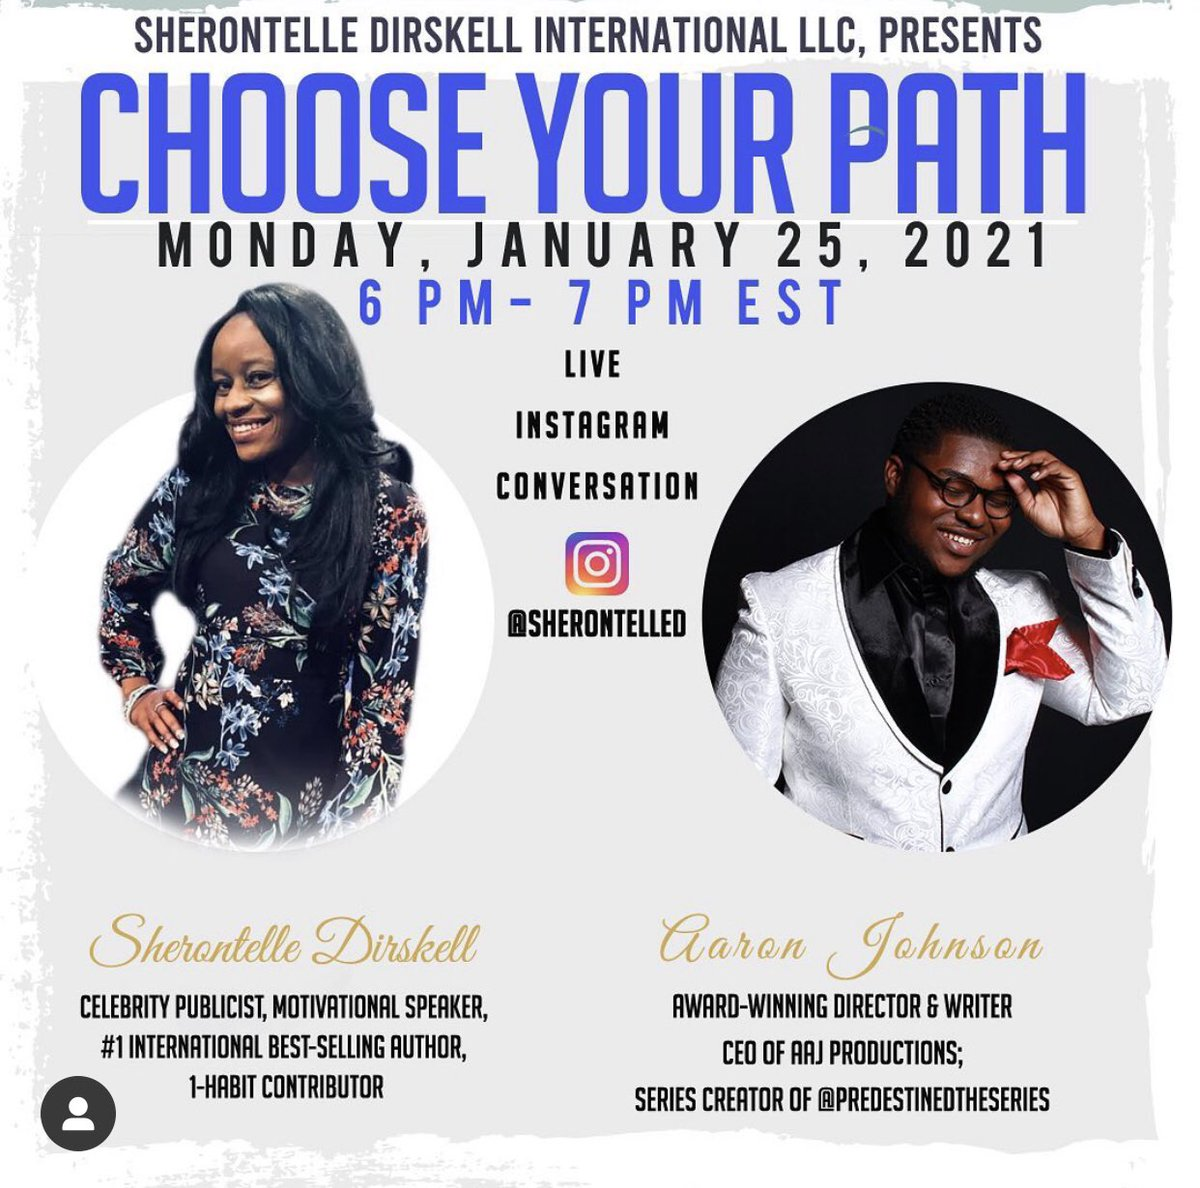 """Join Us on Instagram Live @SherontelleD 6 pm- 7 pm EST @PredestinedShow Live IG """"Choose Your Path"""" #Instagram #InstagramLive #Musical #Music #MusicMonday #MondayMotivation"""